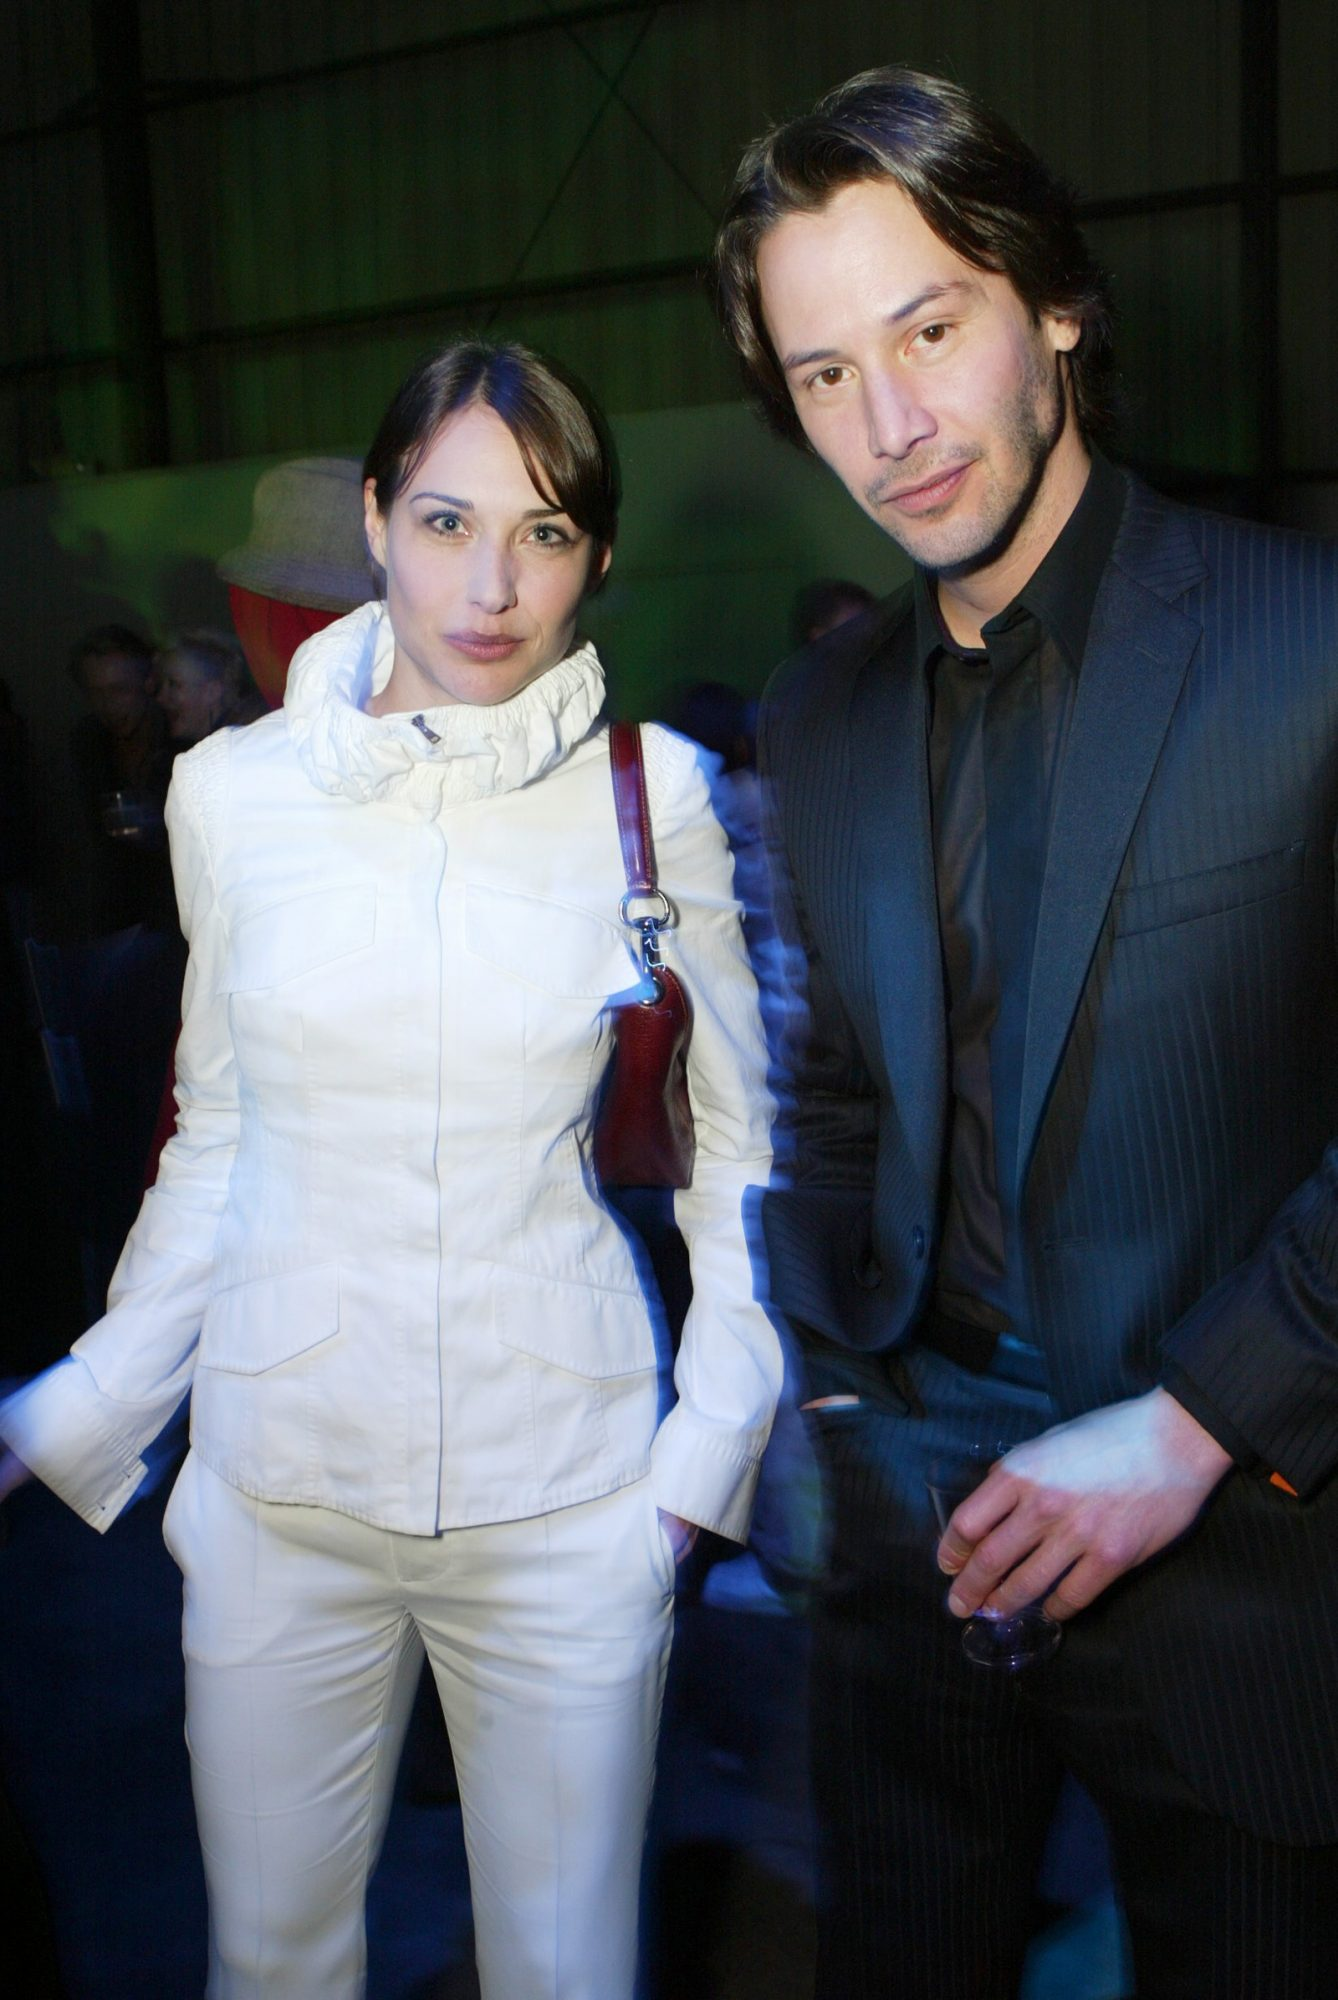 Claire Forlani and Keanu Reeves